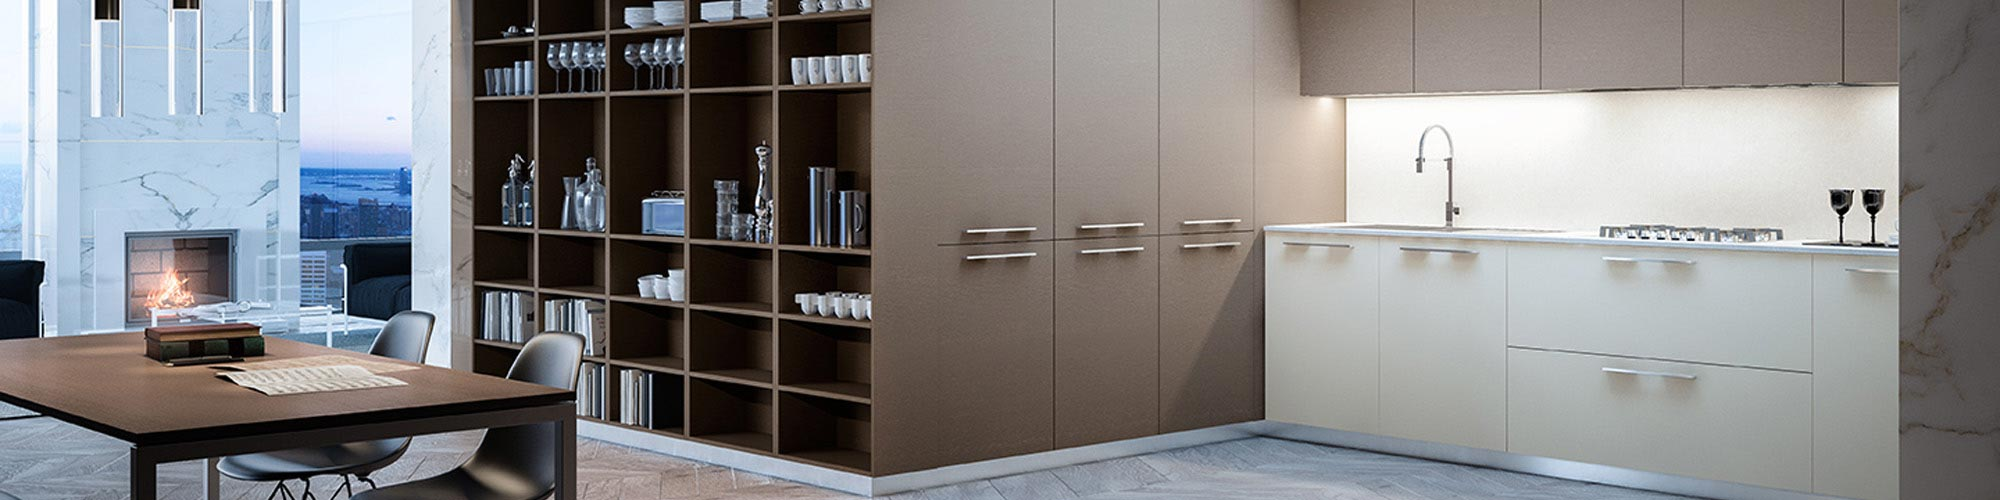 Kitchen Cabinets by FCI London